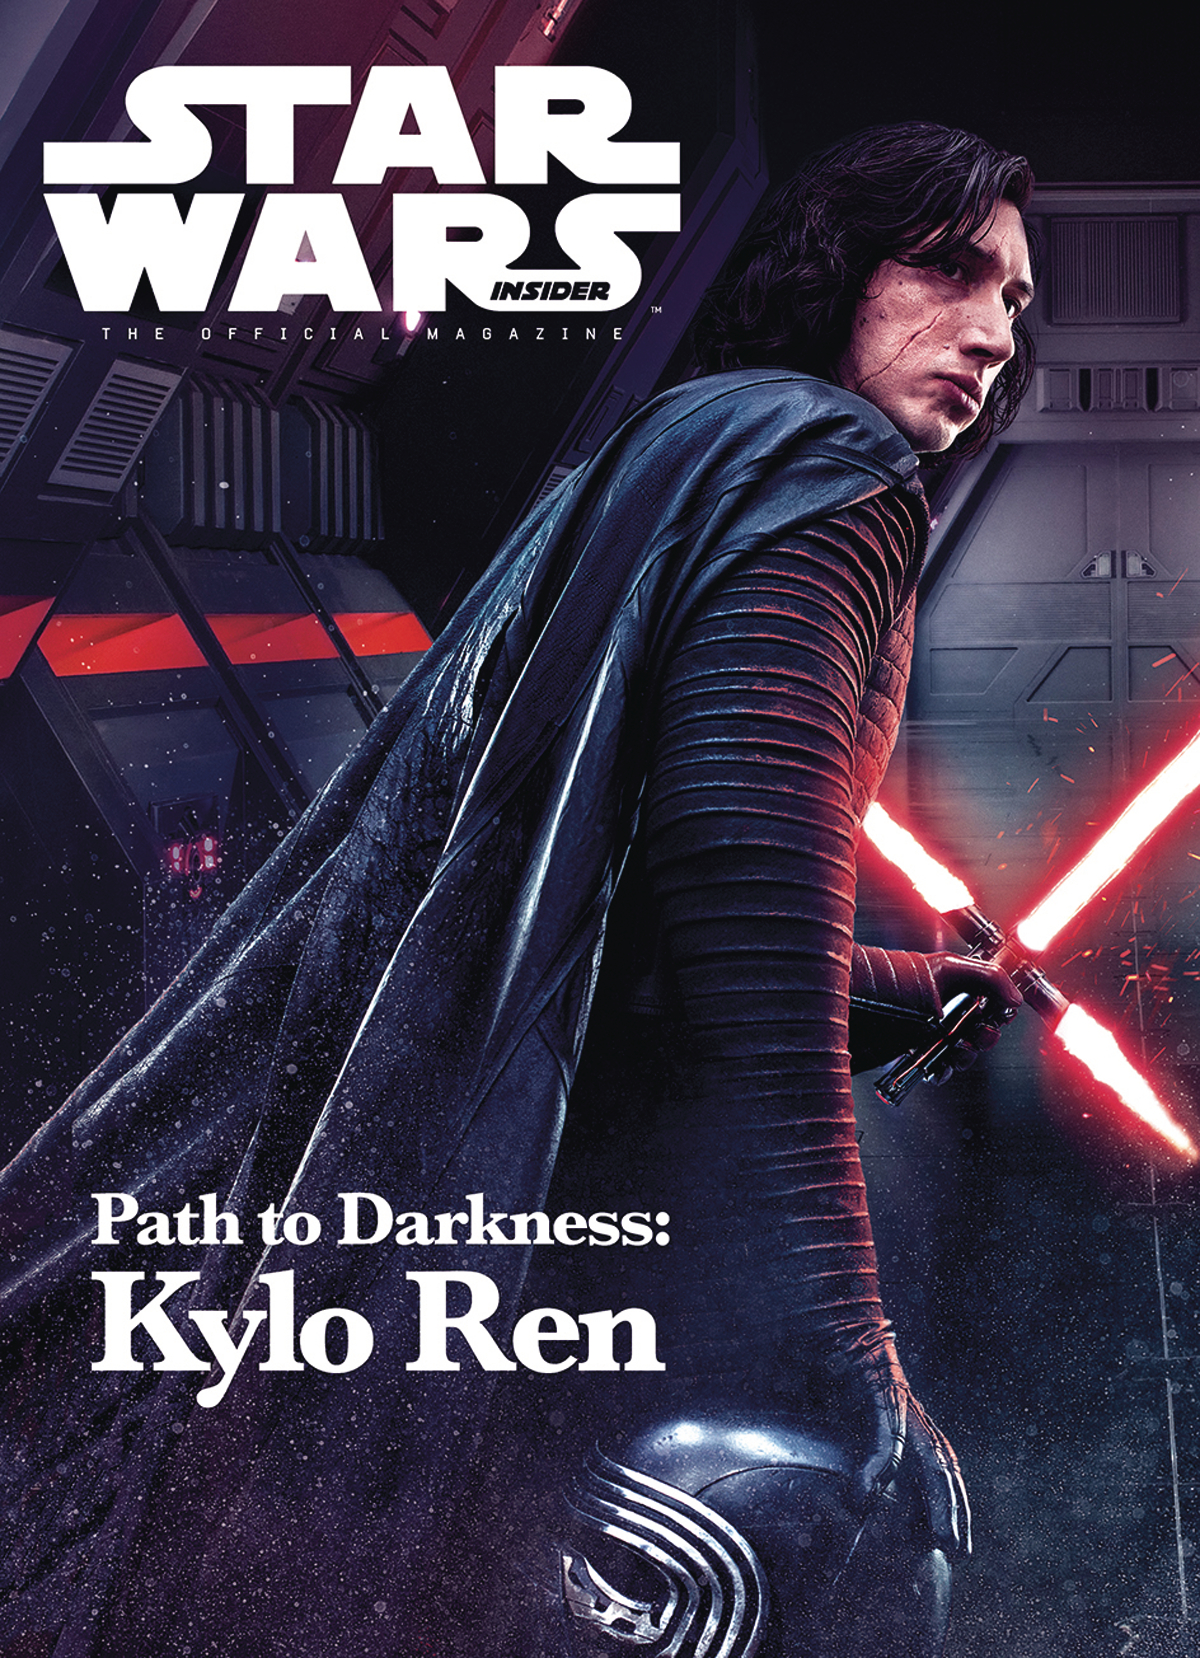 STAR WARS INSIDER #179 NEWSSTAND ED